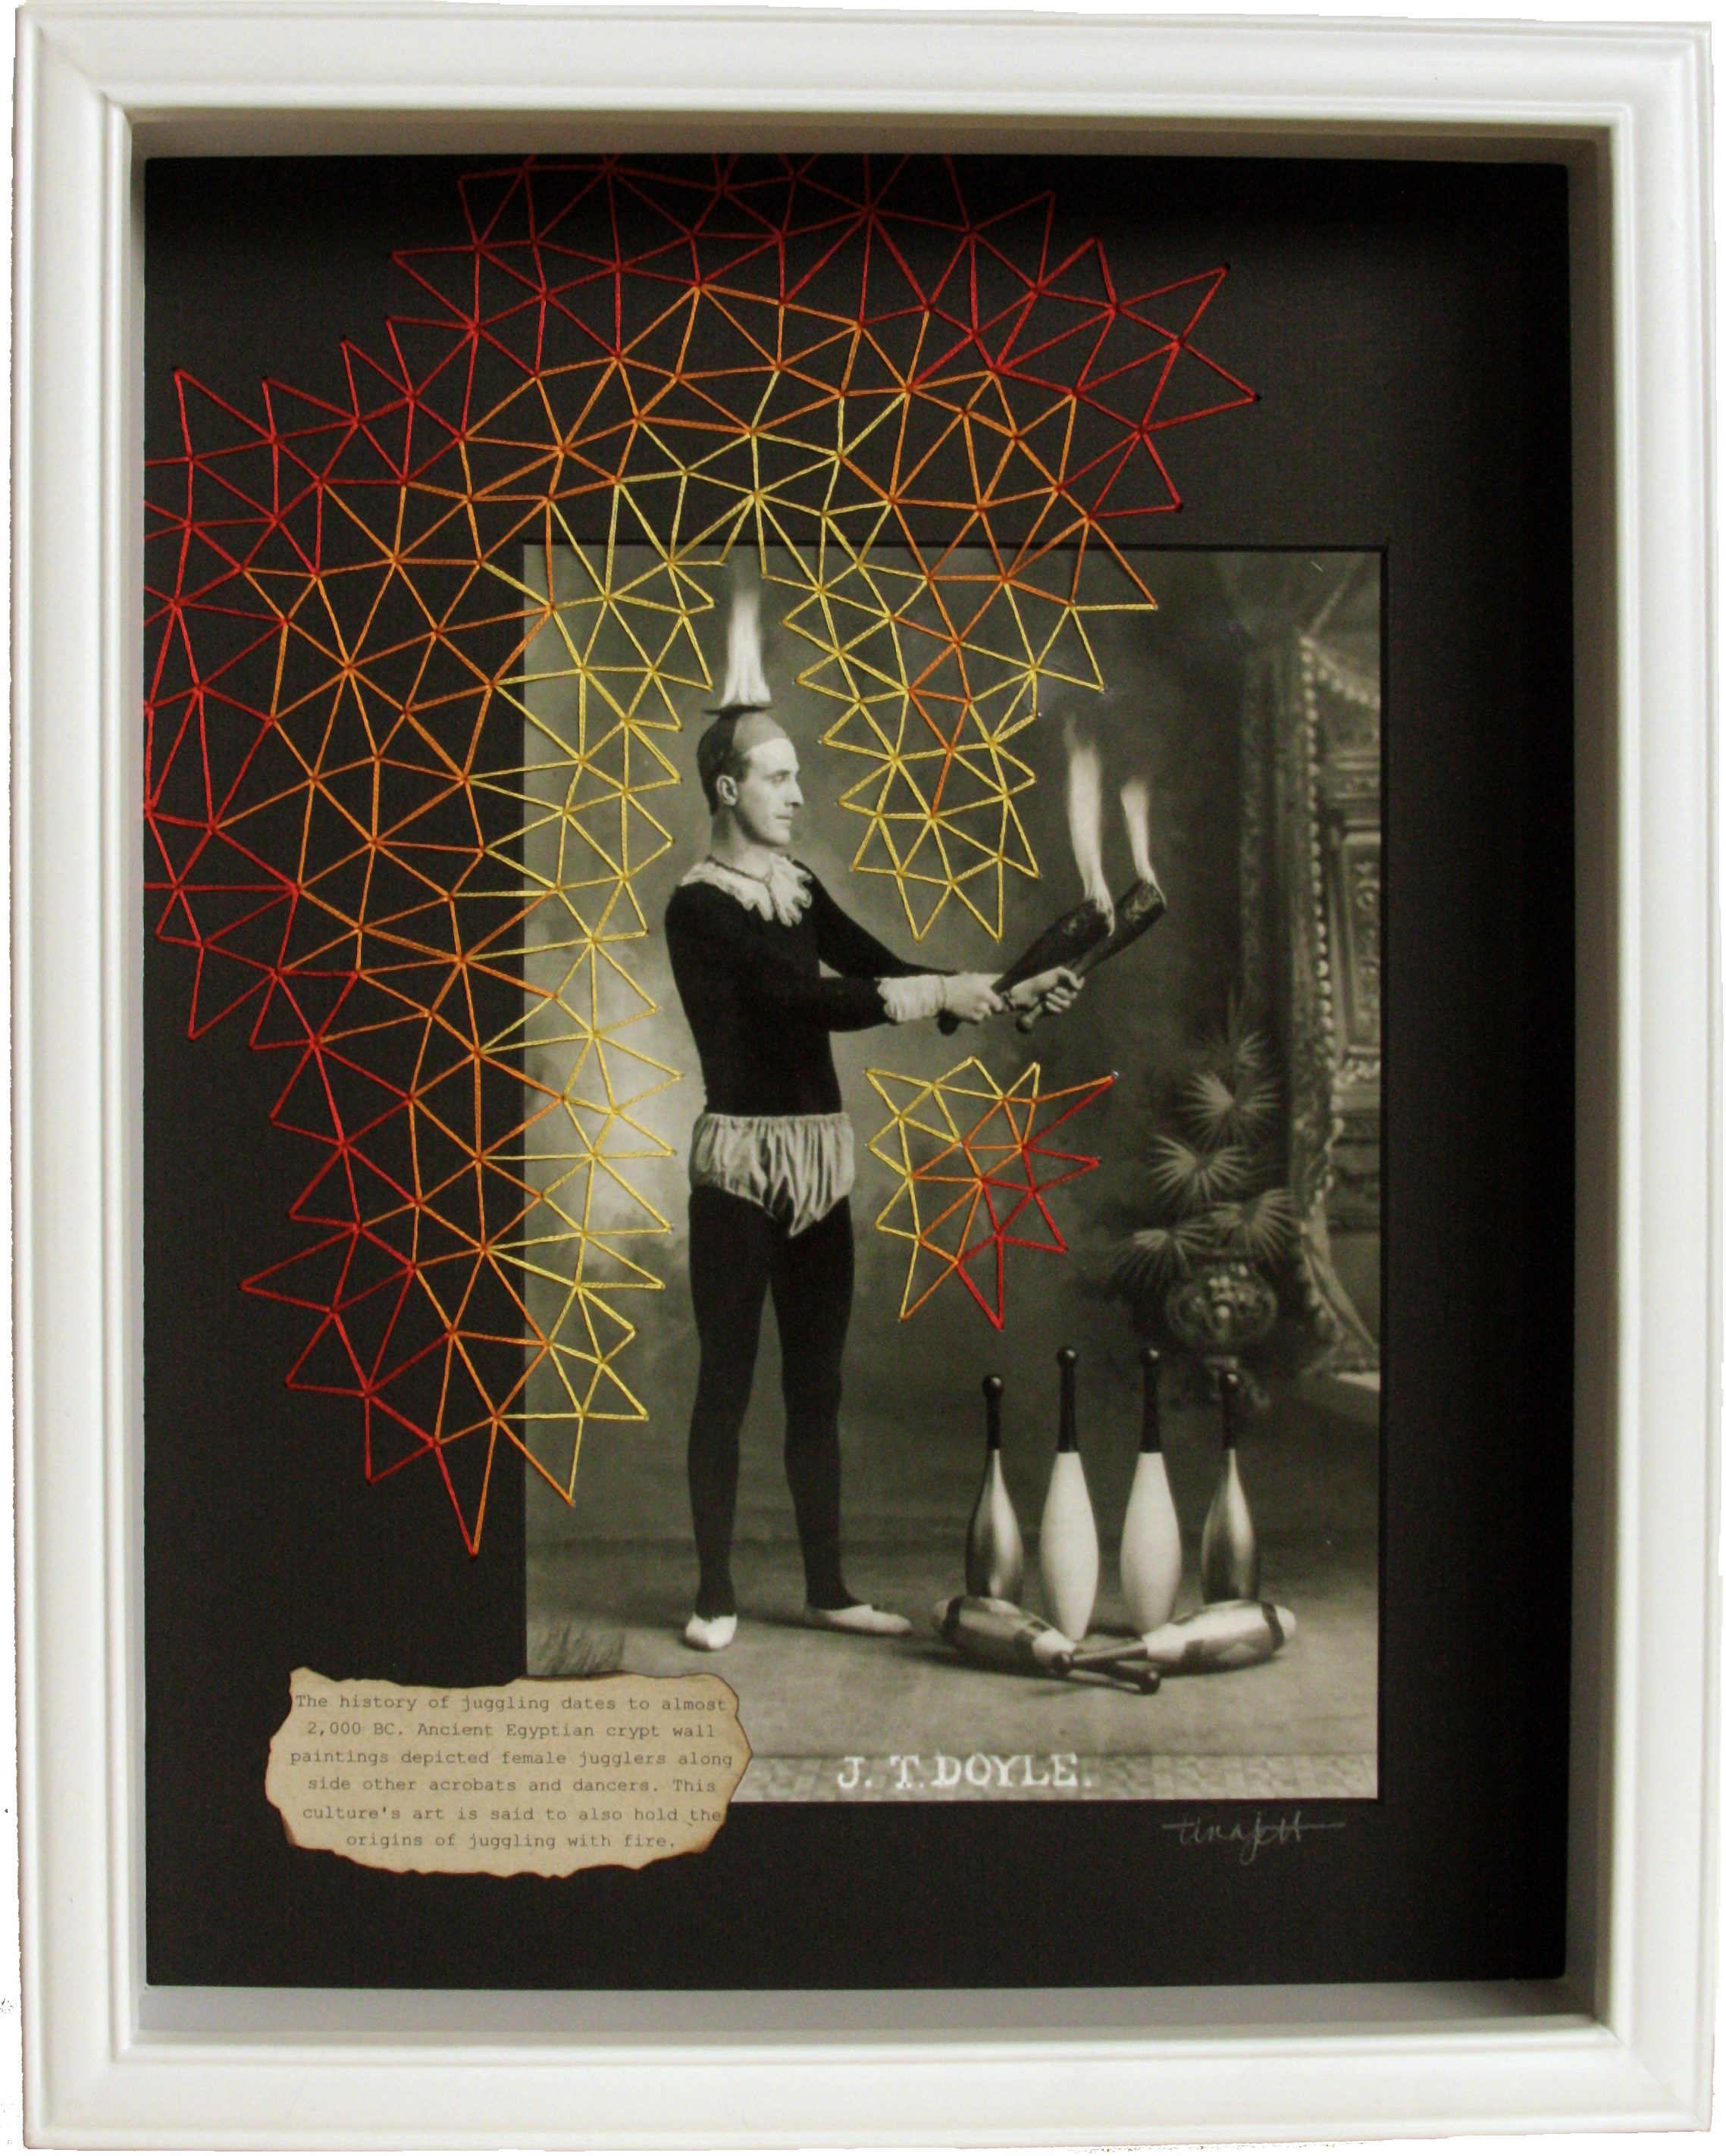 Doyle on Fire - embroidered photograph by Tina Jett